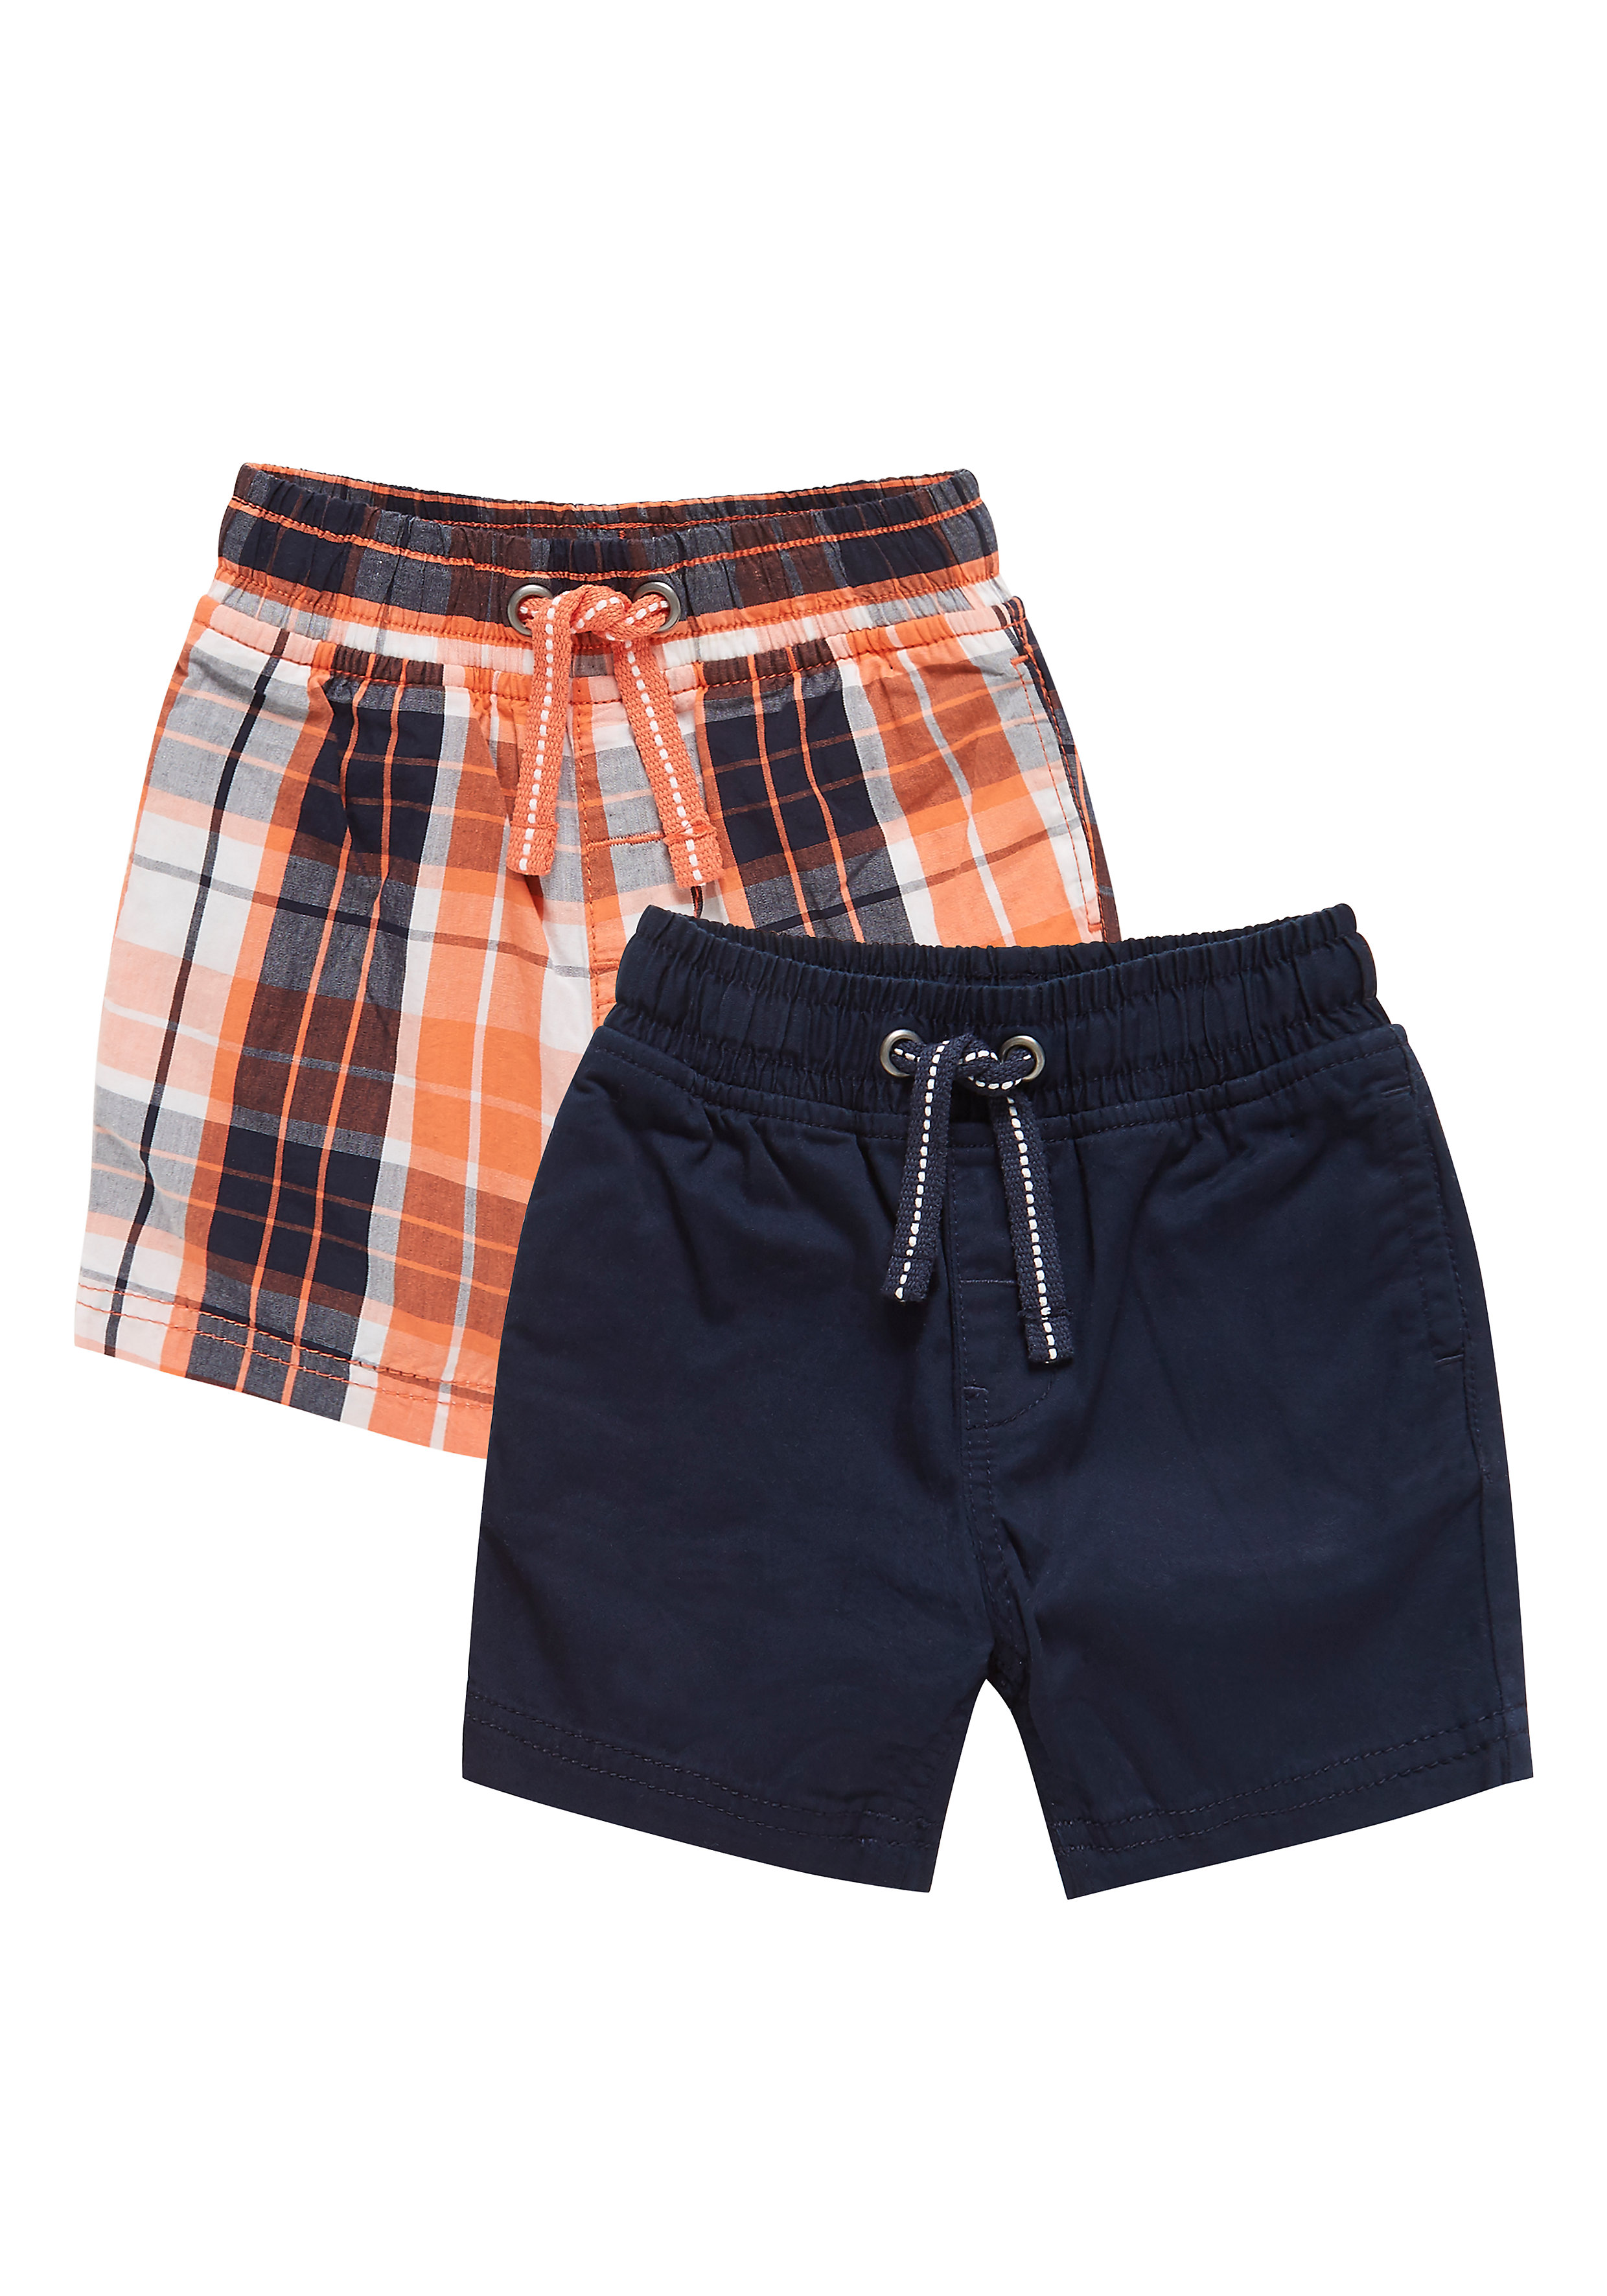 Mothercare   Boys Check And Plain Shorts - 2 Pack - Blue